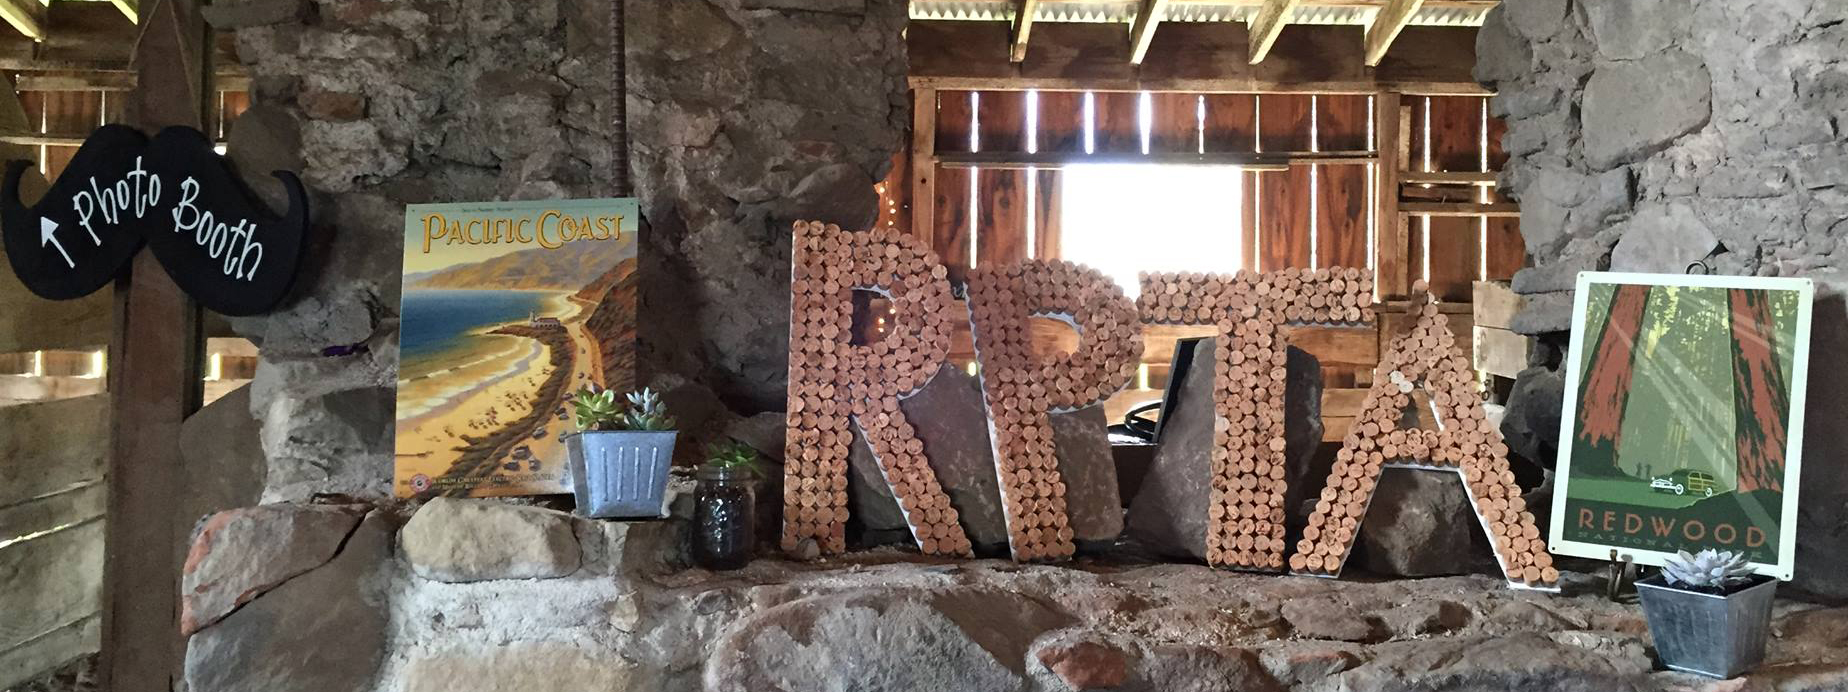 2015 RPTA Dinner and Auction at Santa Margarita Ranch Barn